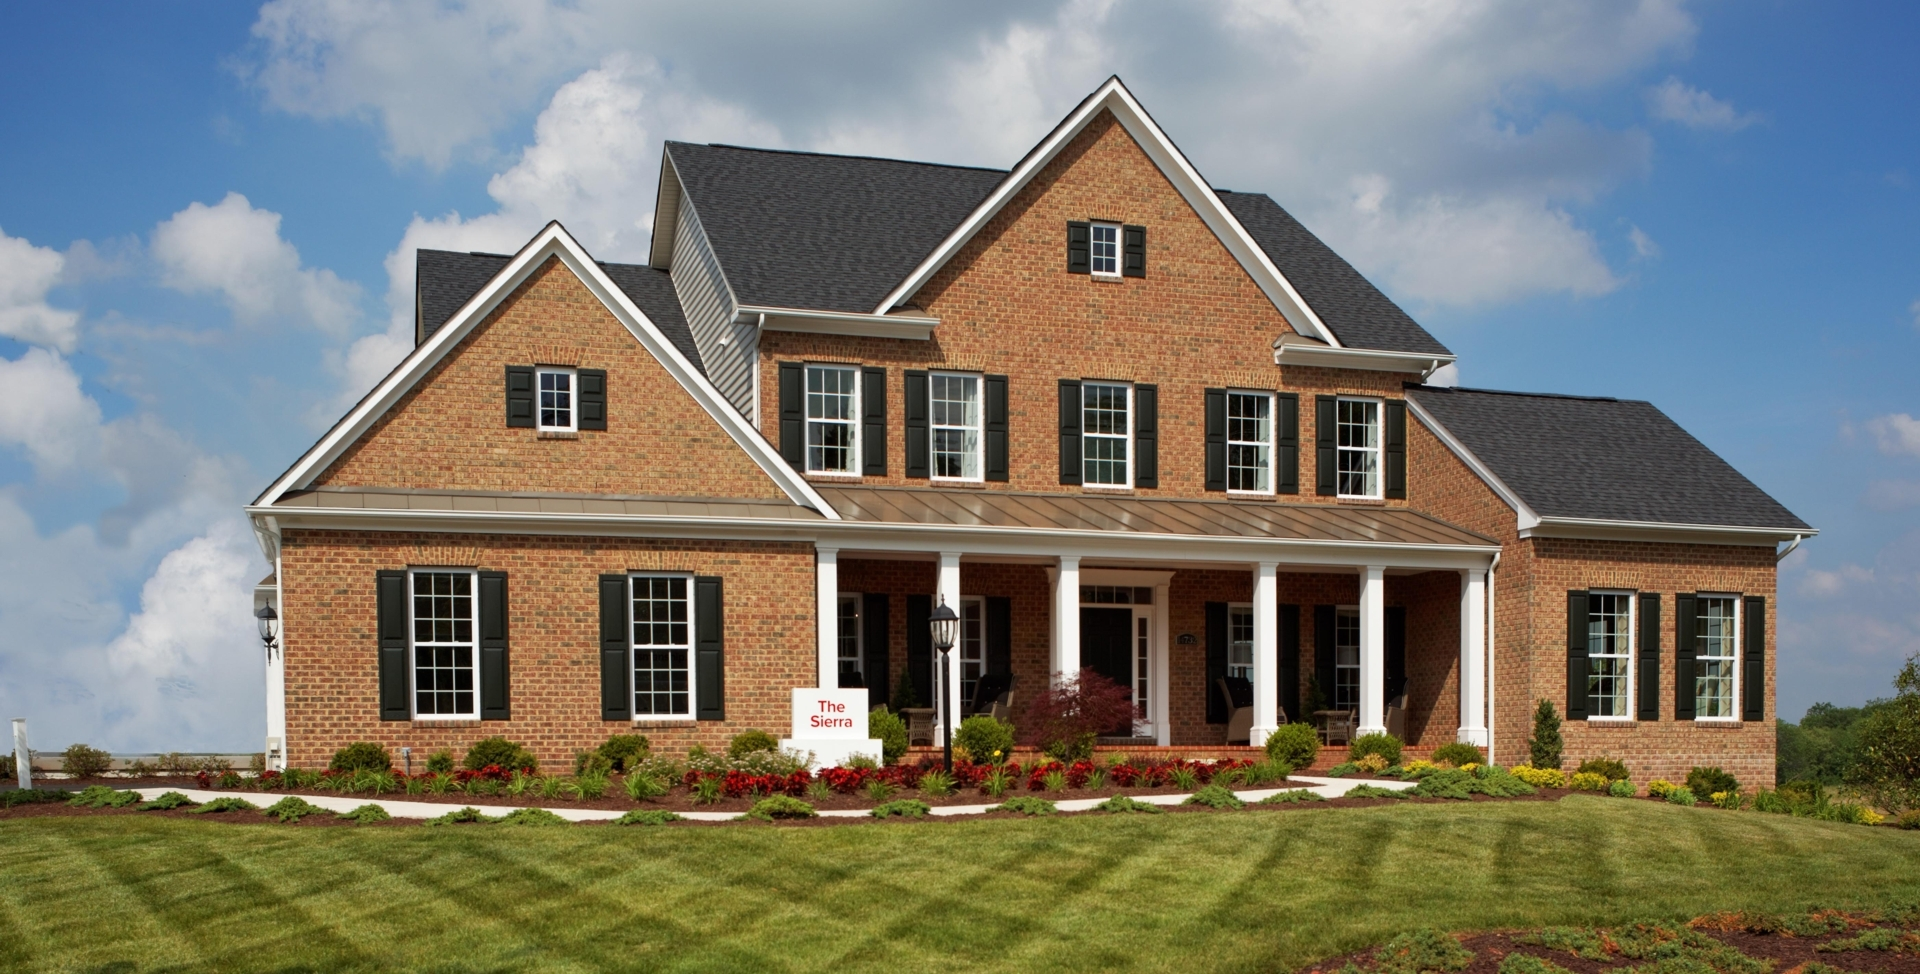 New luxury homes in prince george 39 s county maryland mid for Mid atlantic home builders